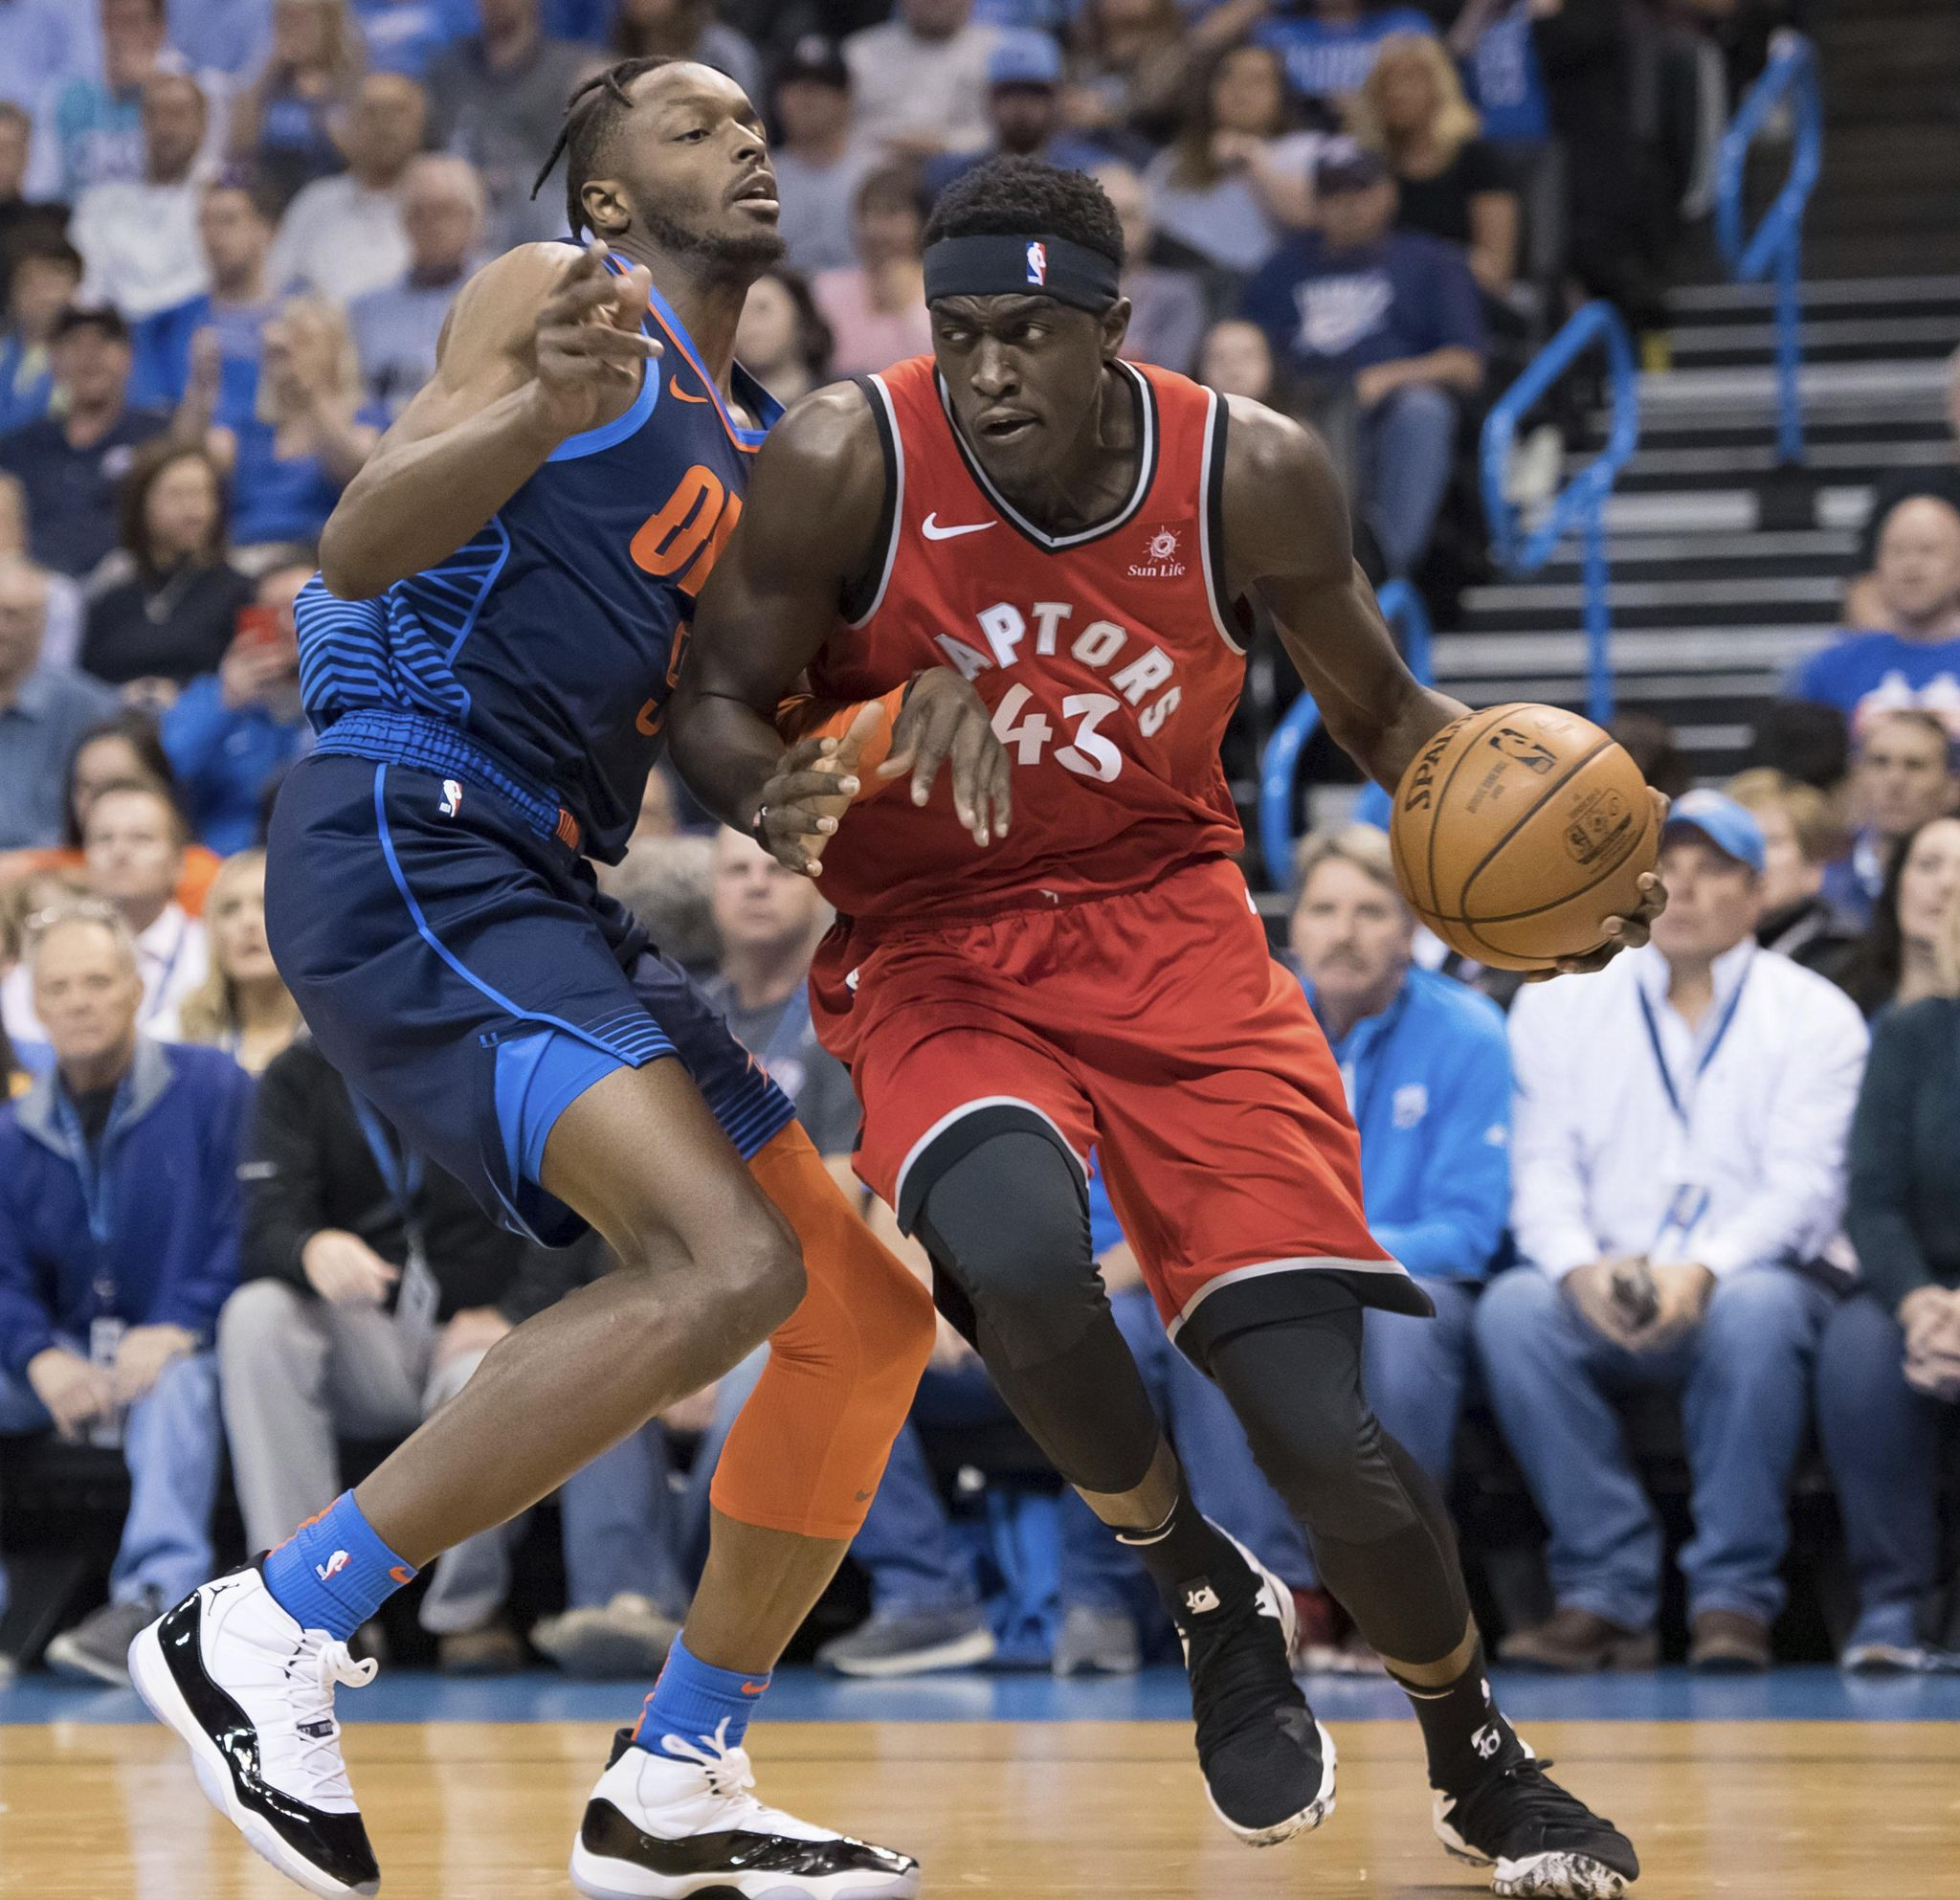 Raptors_thunder_basketball_73397_s2048x1985